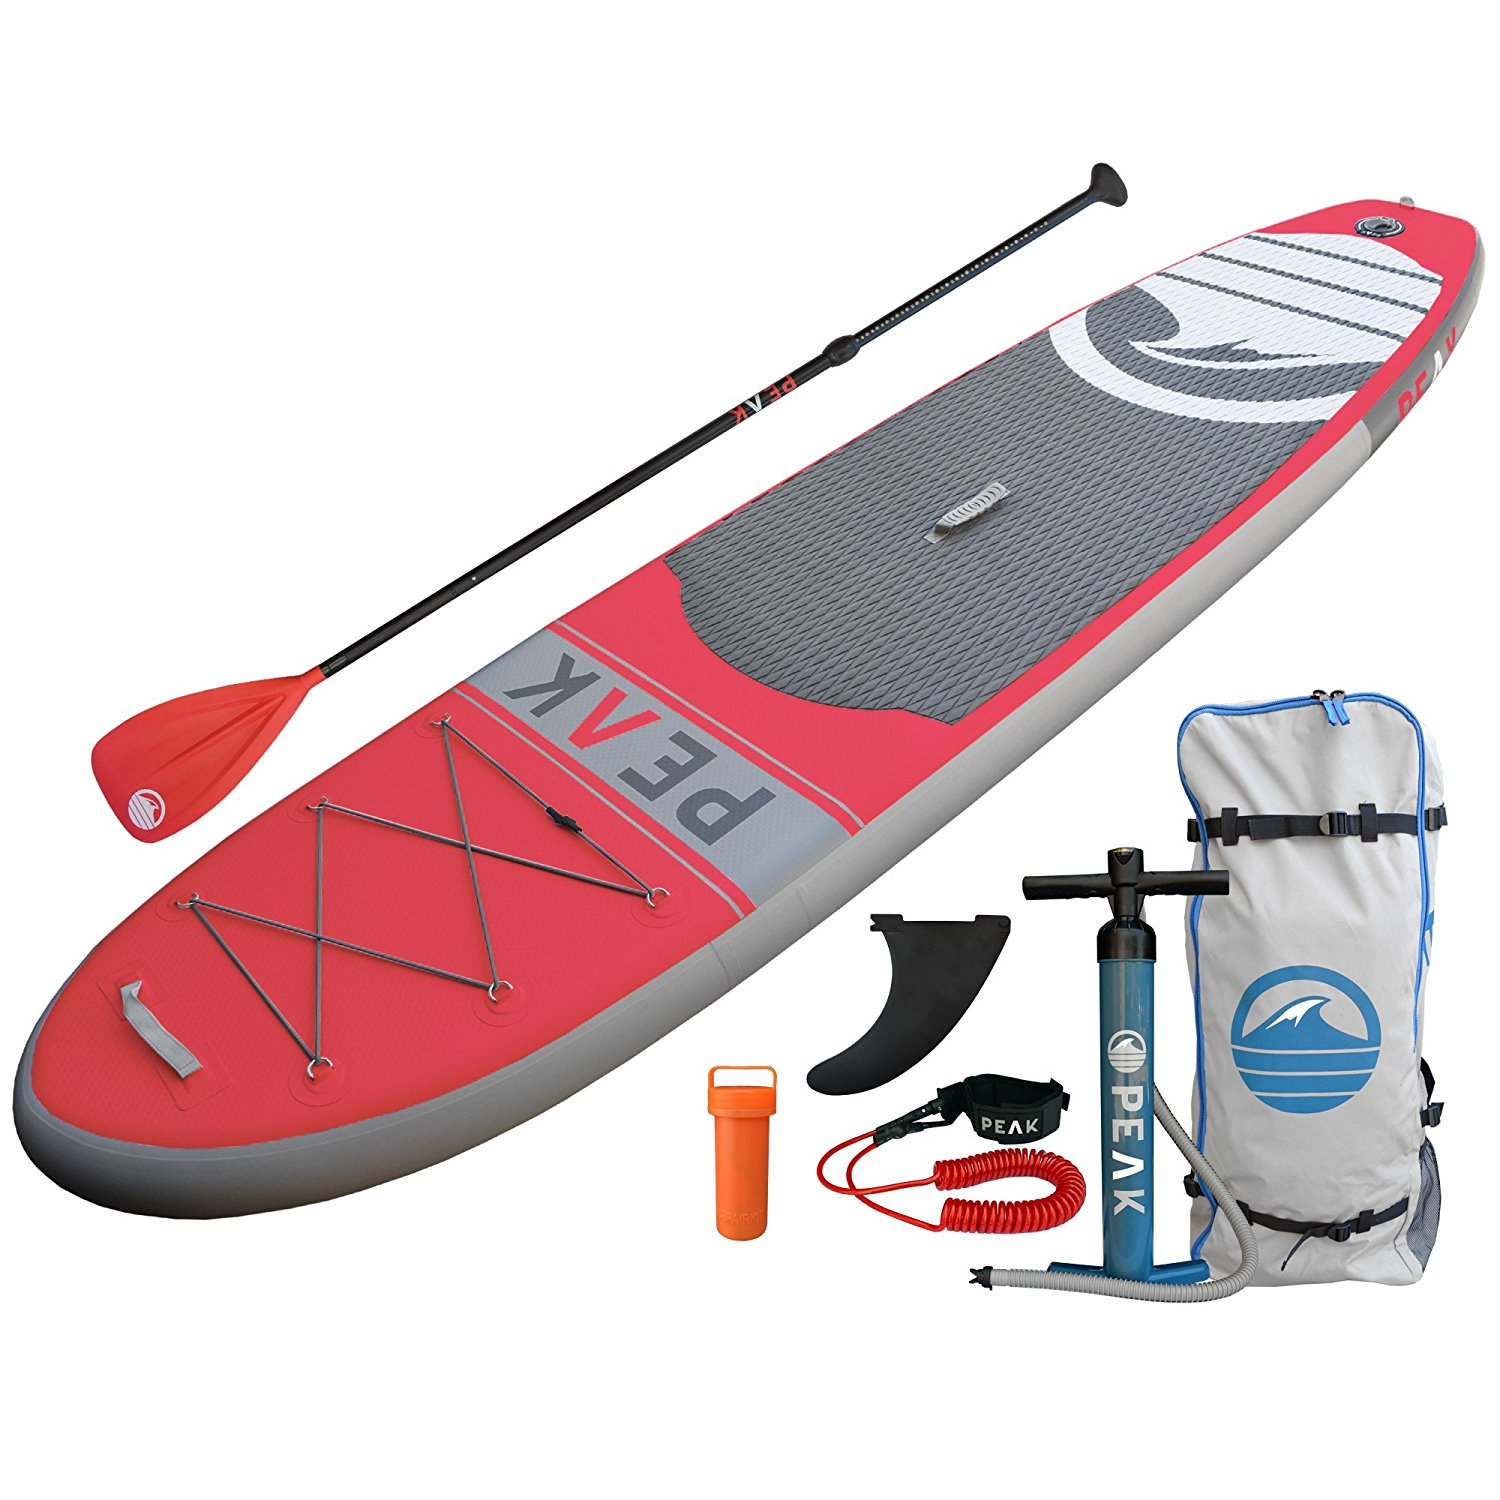 ISLE Surf and SUP Inflatable SUP Kit